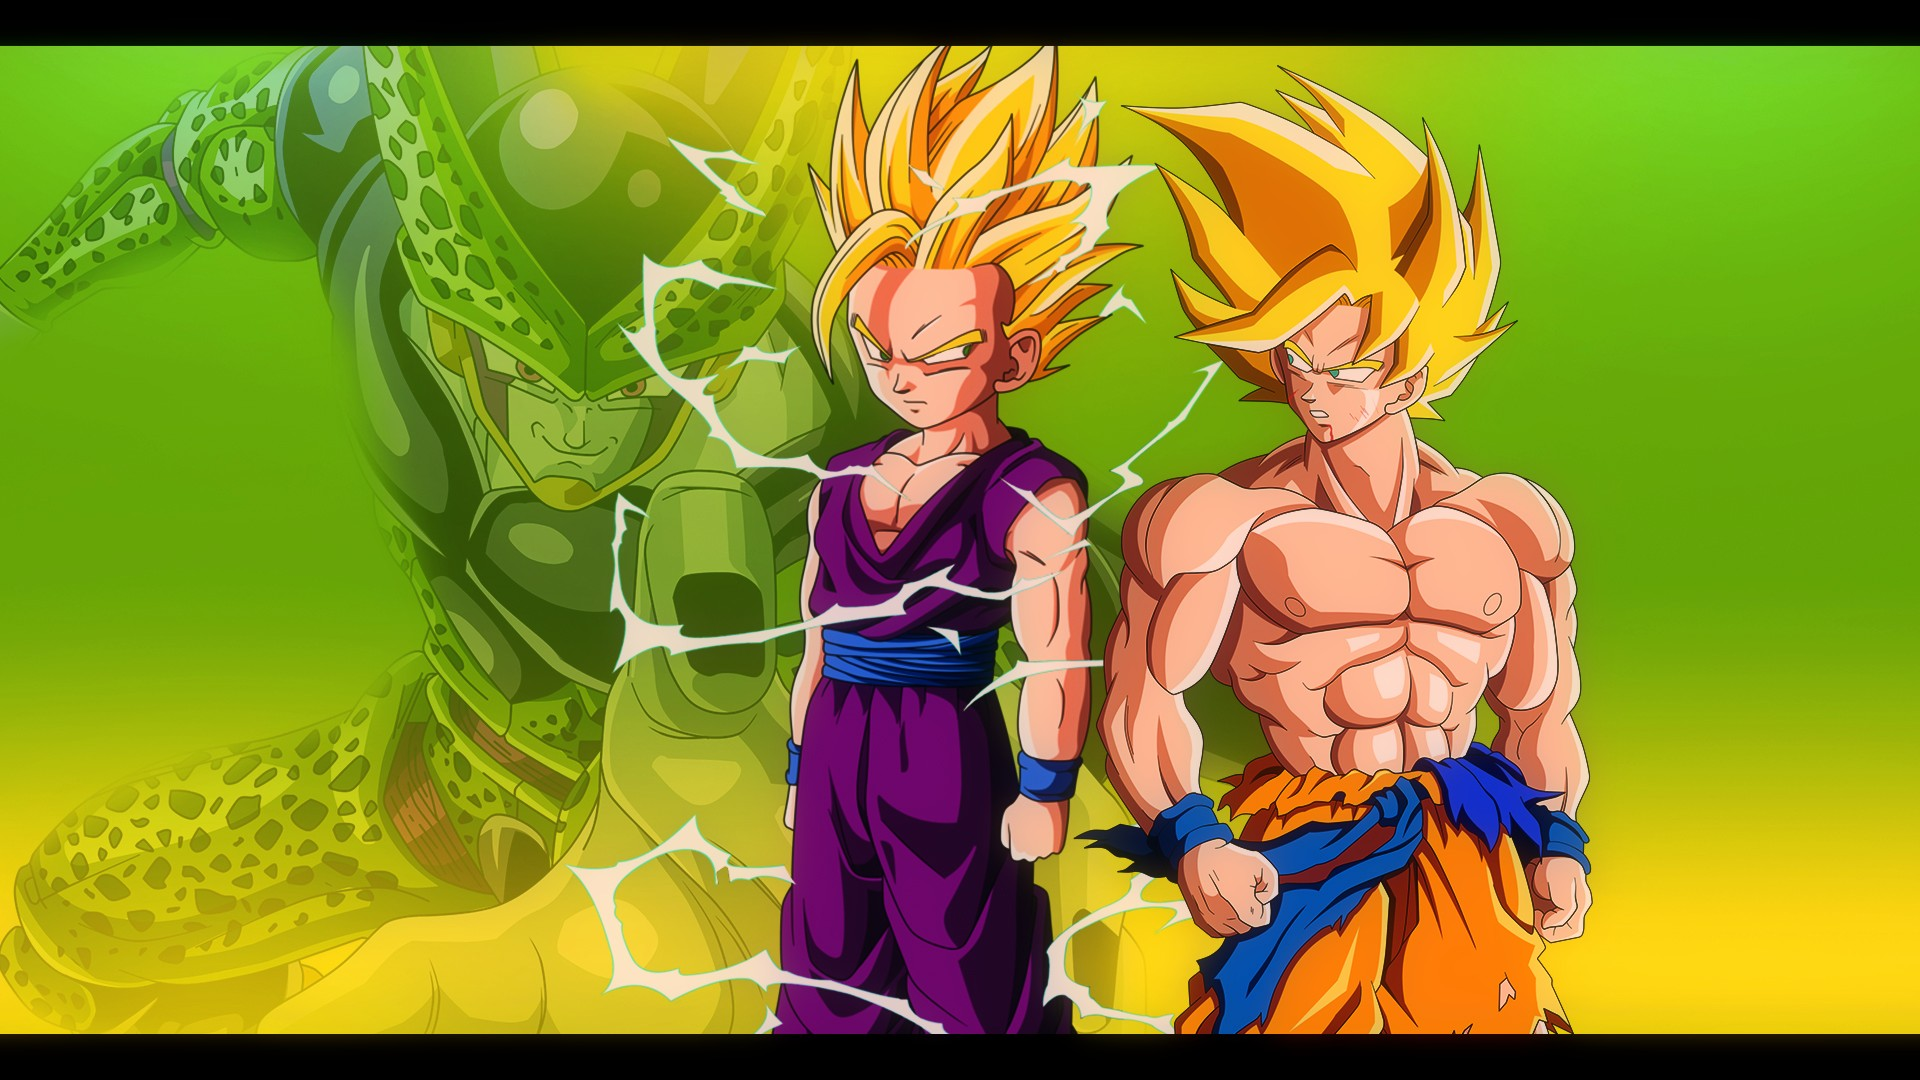 Goku and Gohan vs Cell   DBZ Wallpaper 19201080 by Oirigns on 1920x1080